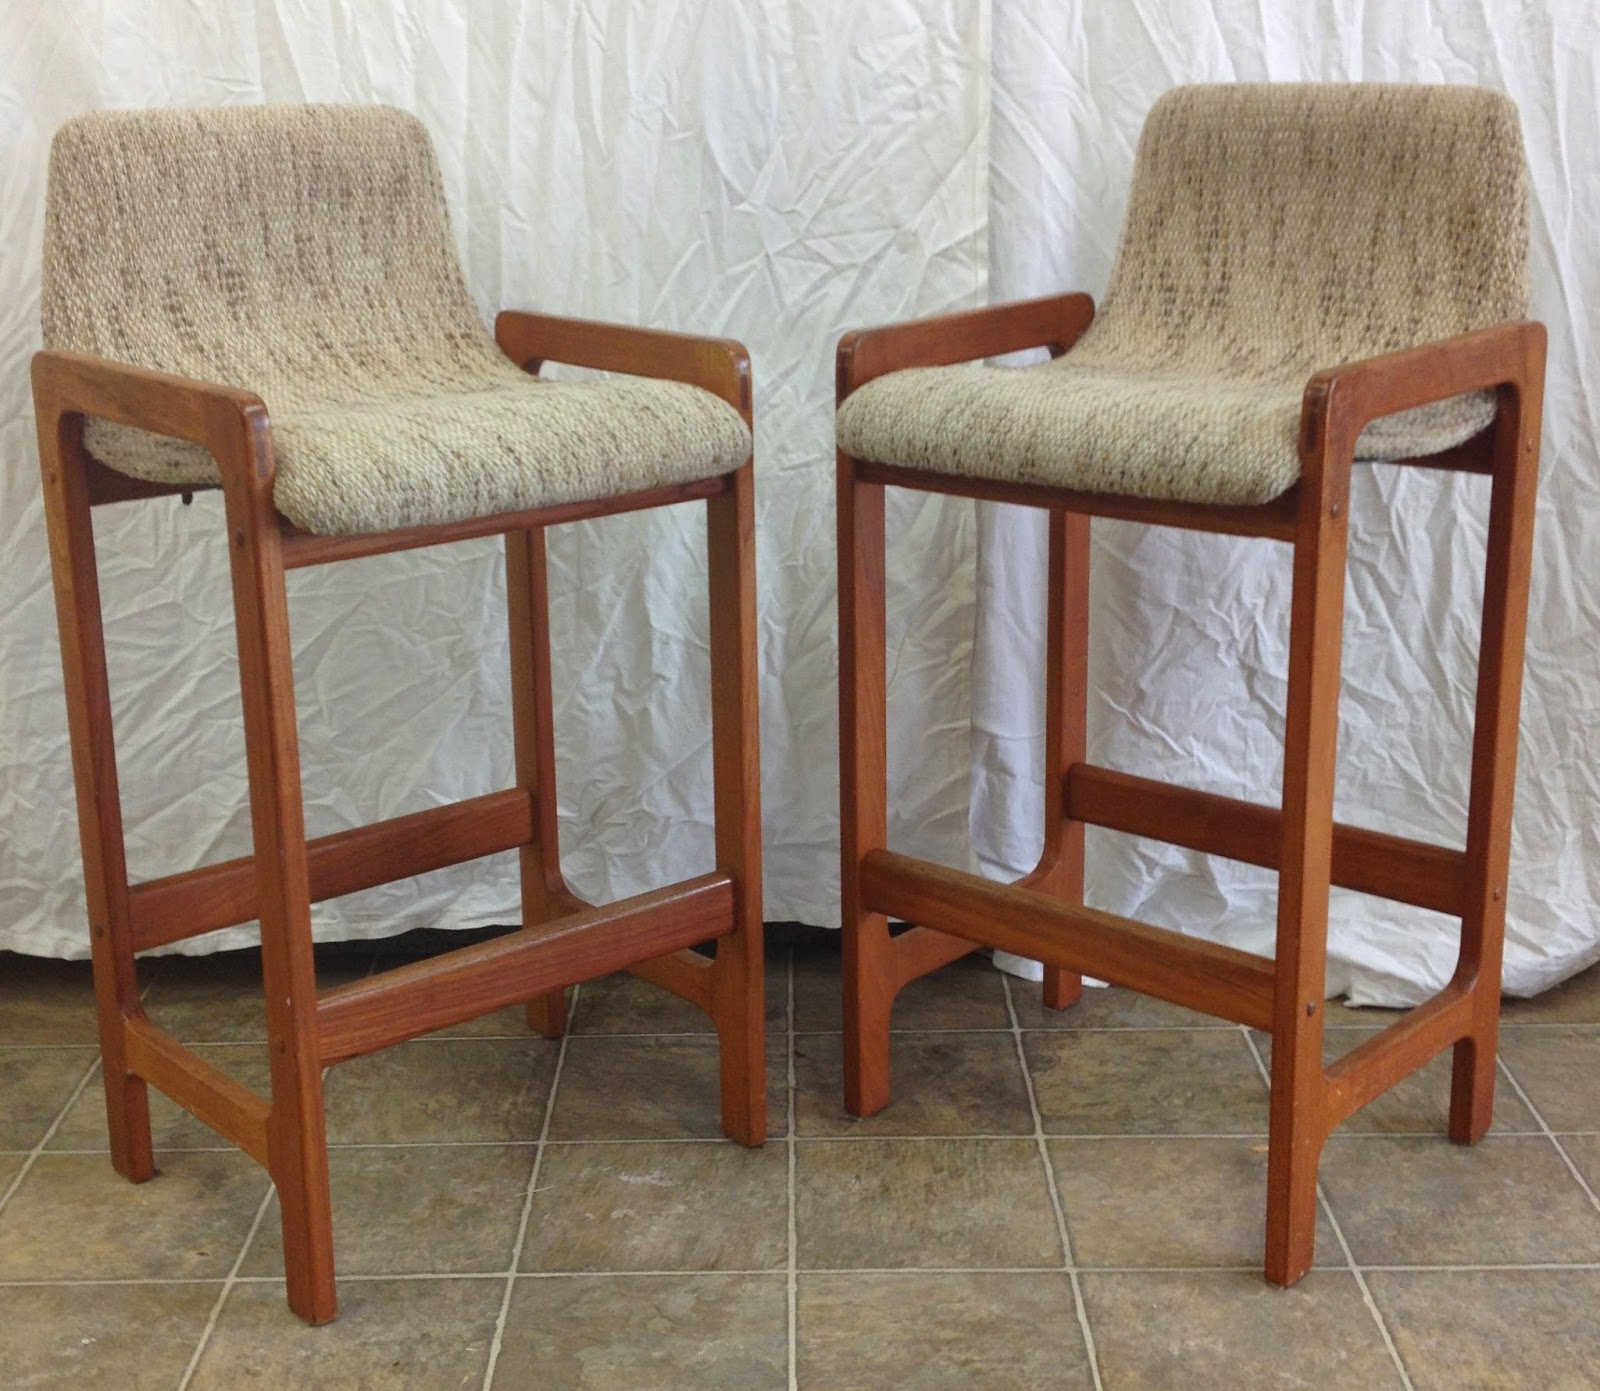 NOW SOLD Pair Of Teak Bar Stools Made By D Scan Unique Look